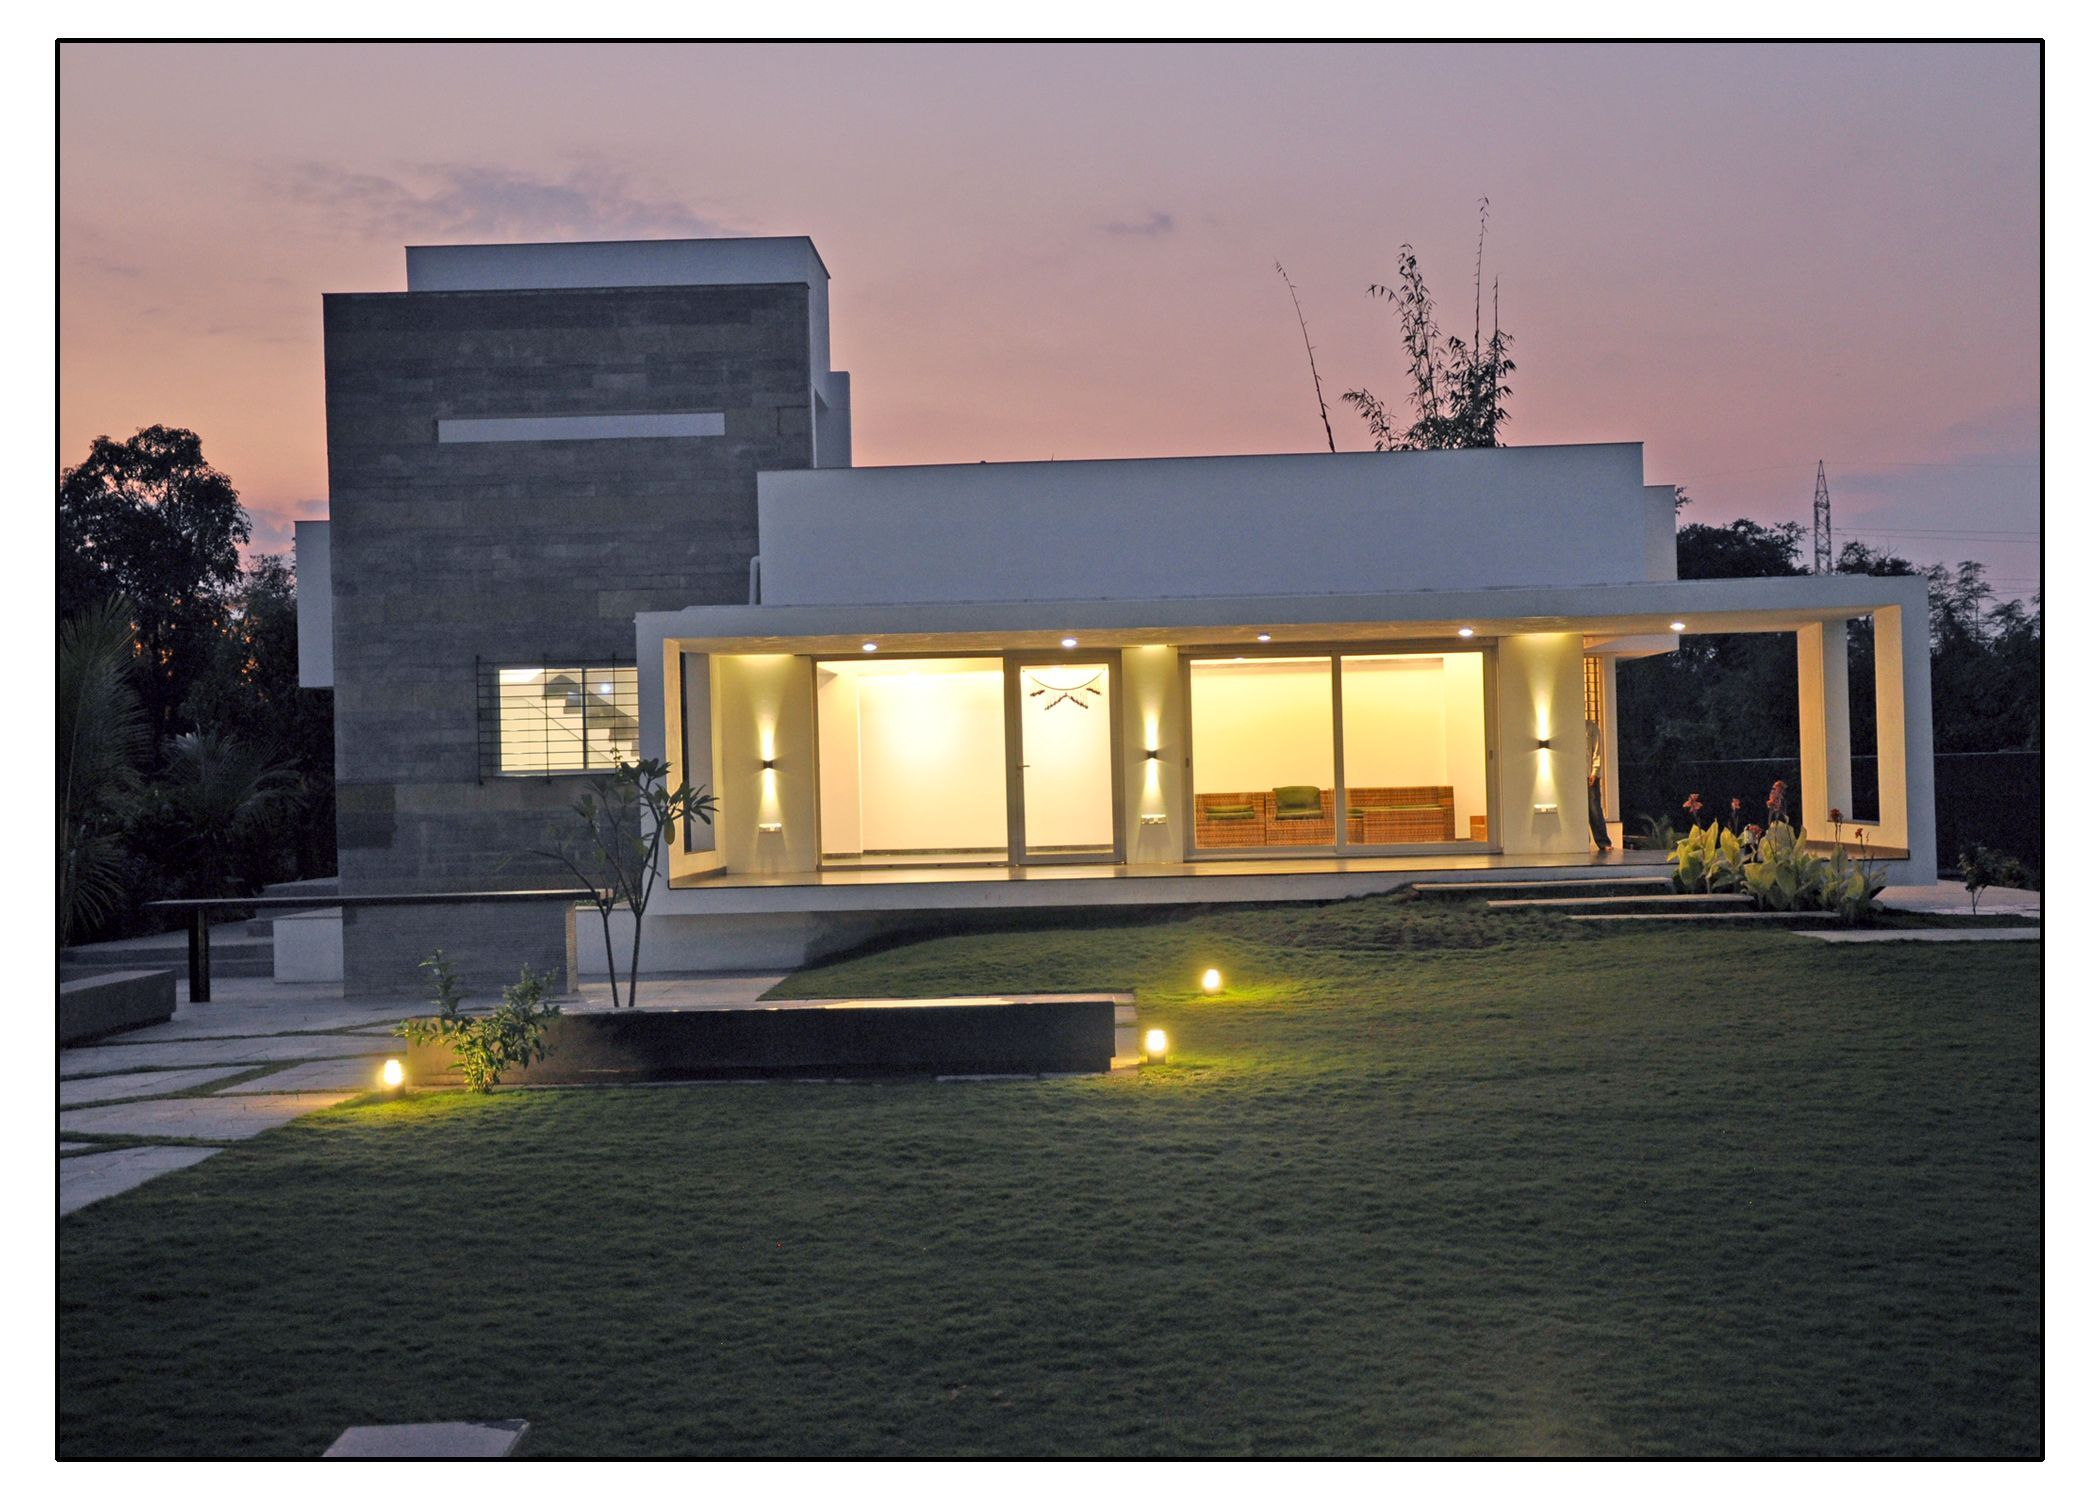 Architecture and interior design projects in india for Architecture design for home in noida